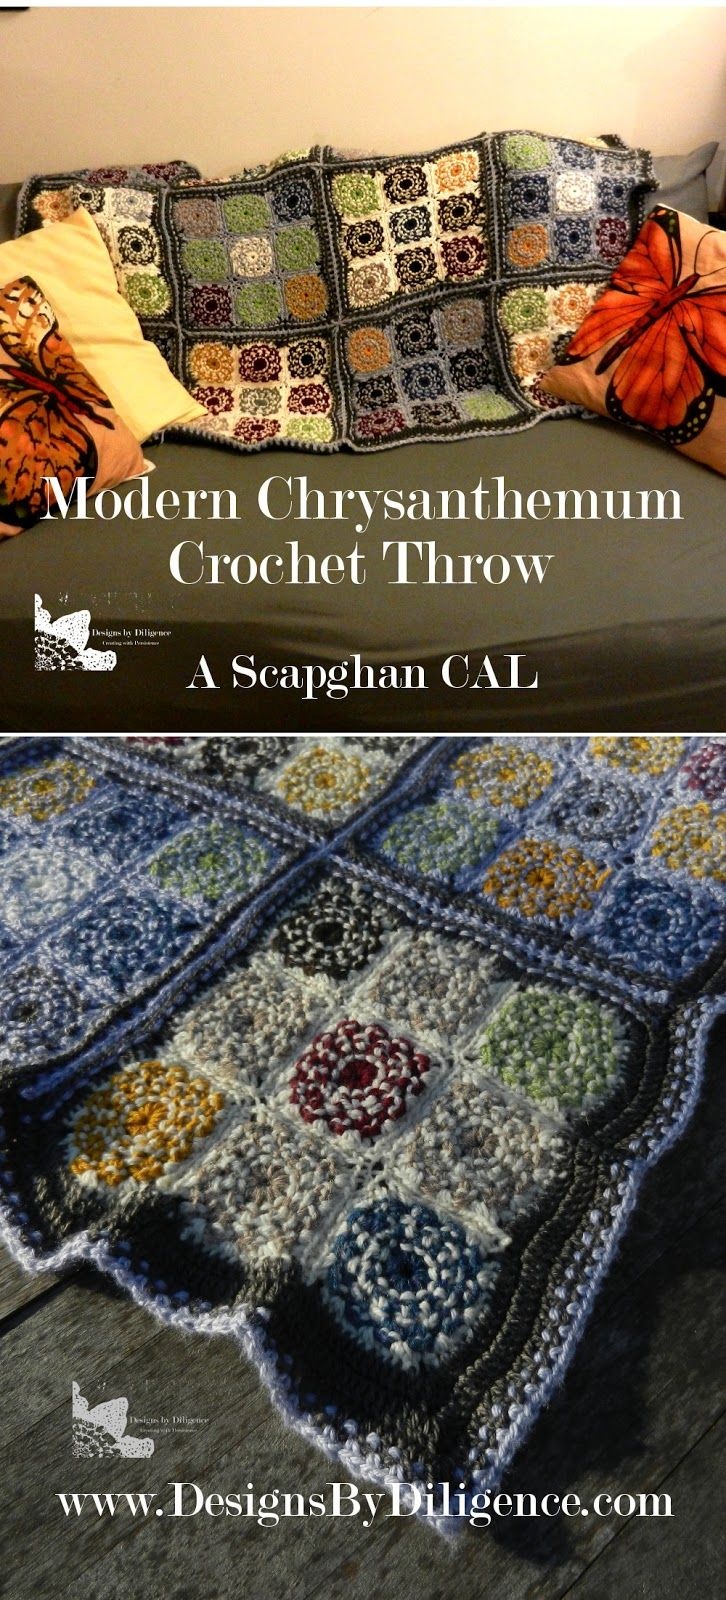 Scrapghan Crochet Free Pattern Scrap The Modern Chrysanthemum Throw Is A Free Crochet Pattern For A Throw